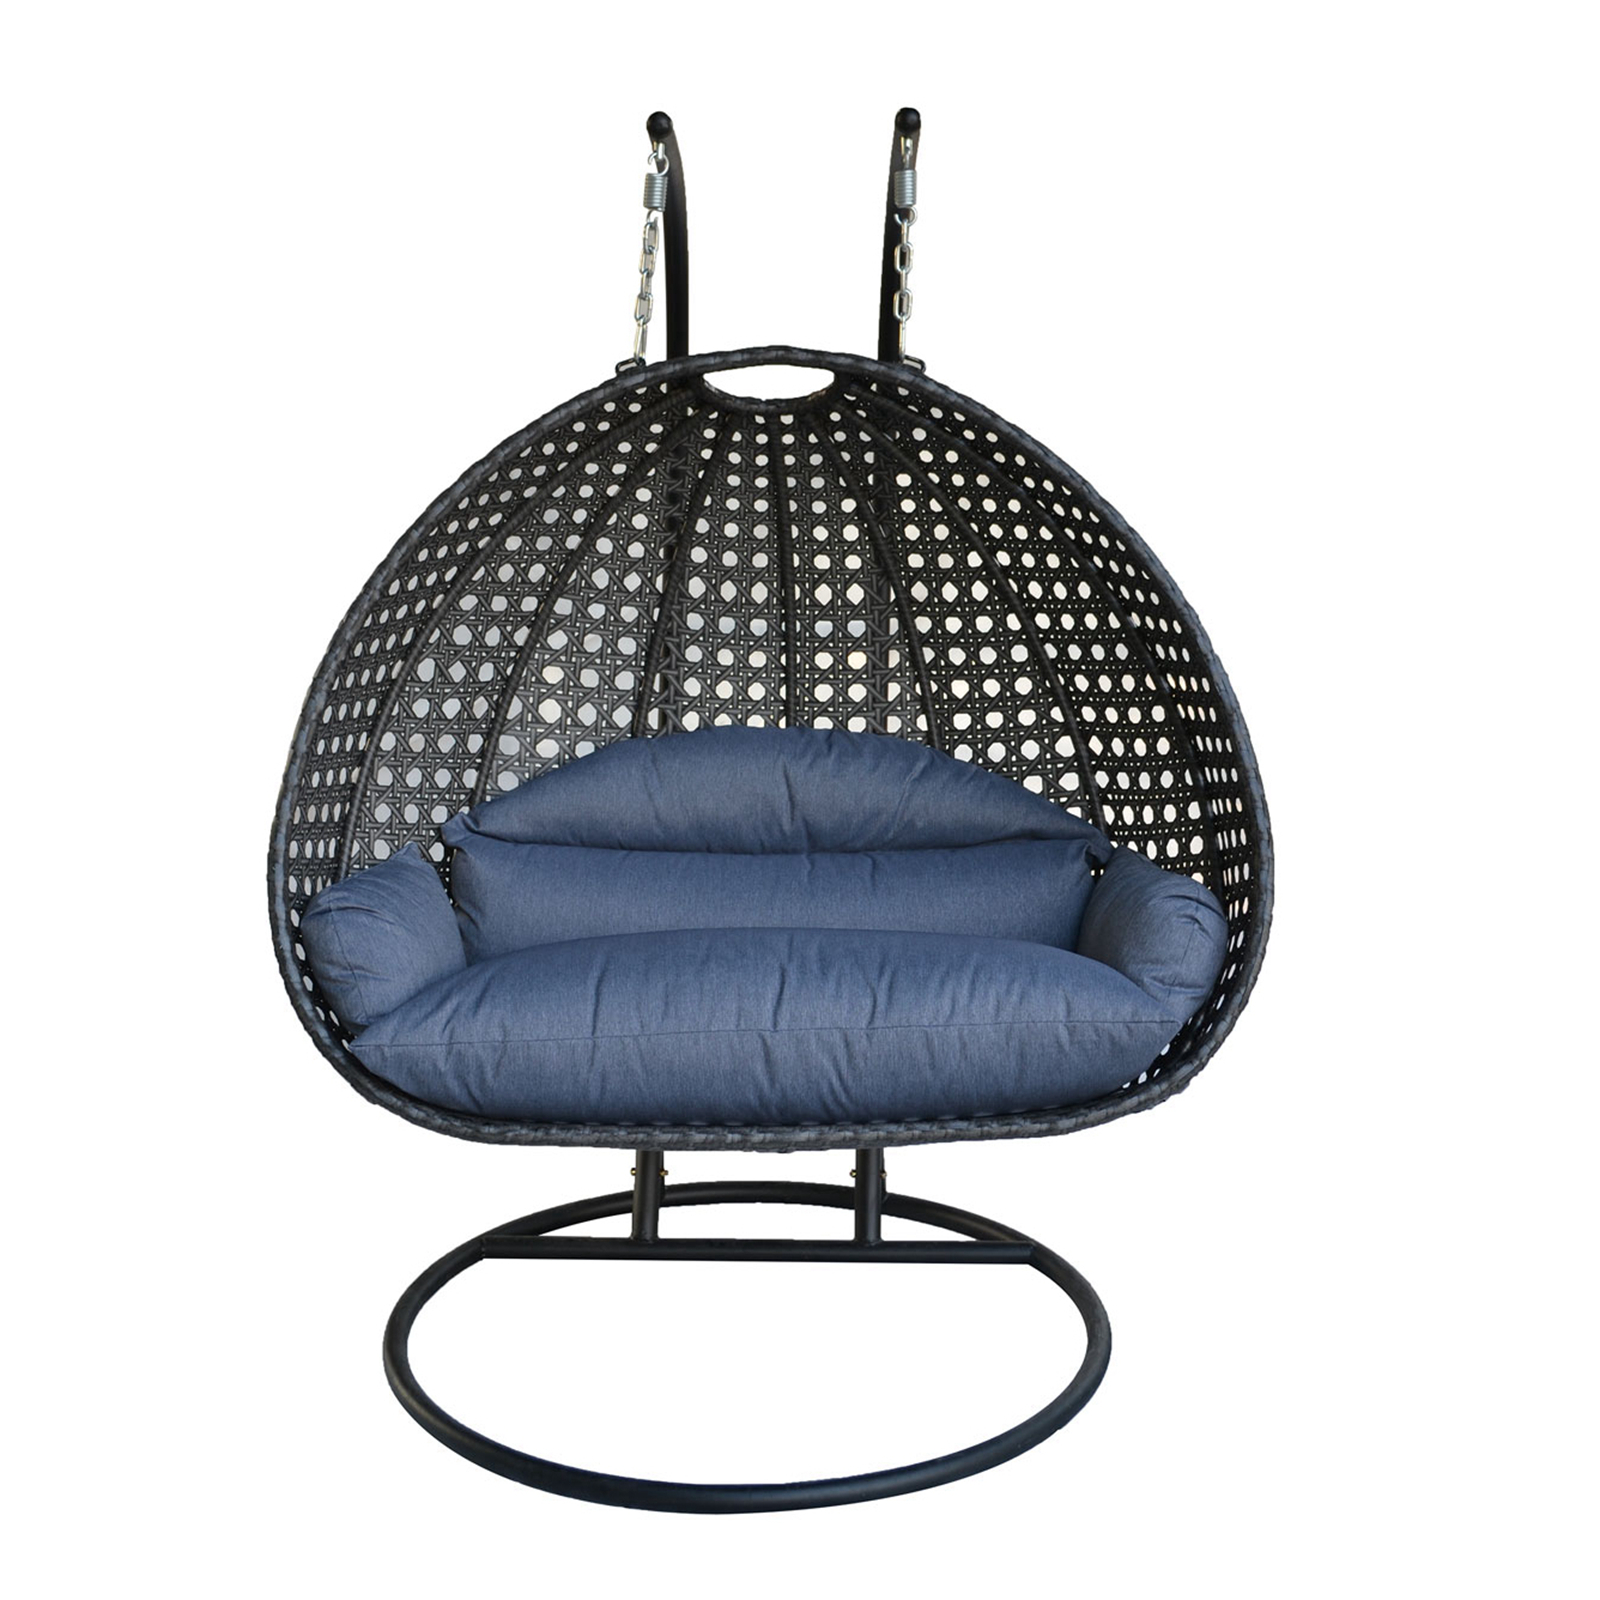 Heavy Duty 2 Person Wicker Chair Swing Hammock Rattan Outdoor Indoor Furnitur